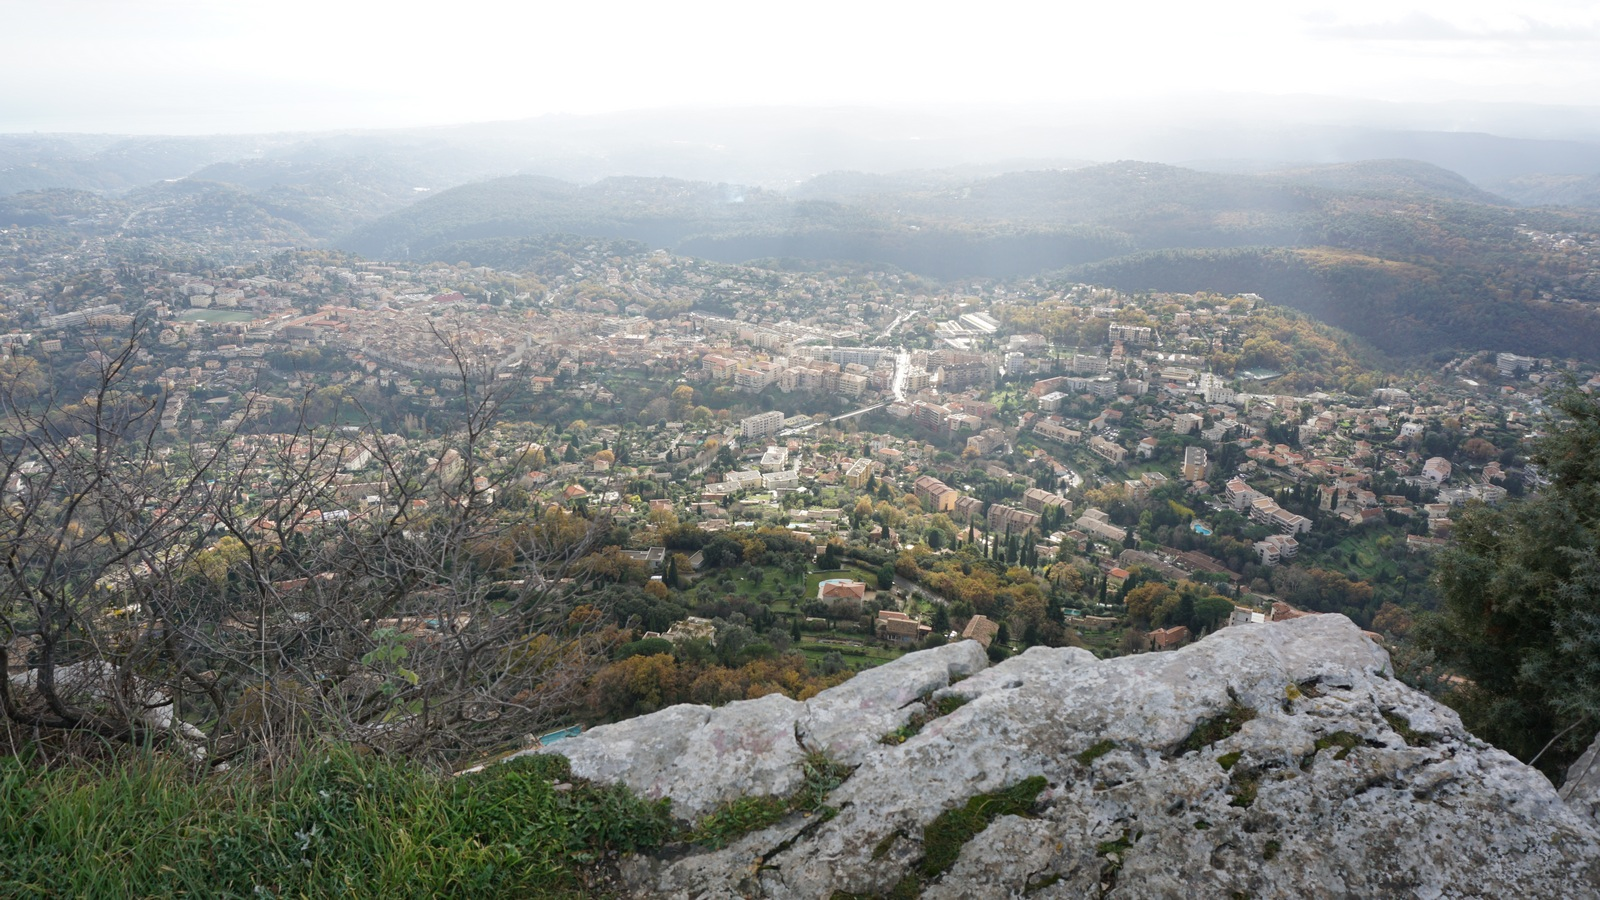 Vence seen from Baou des Blancs